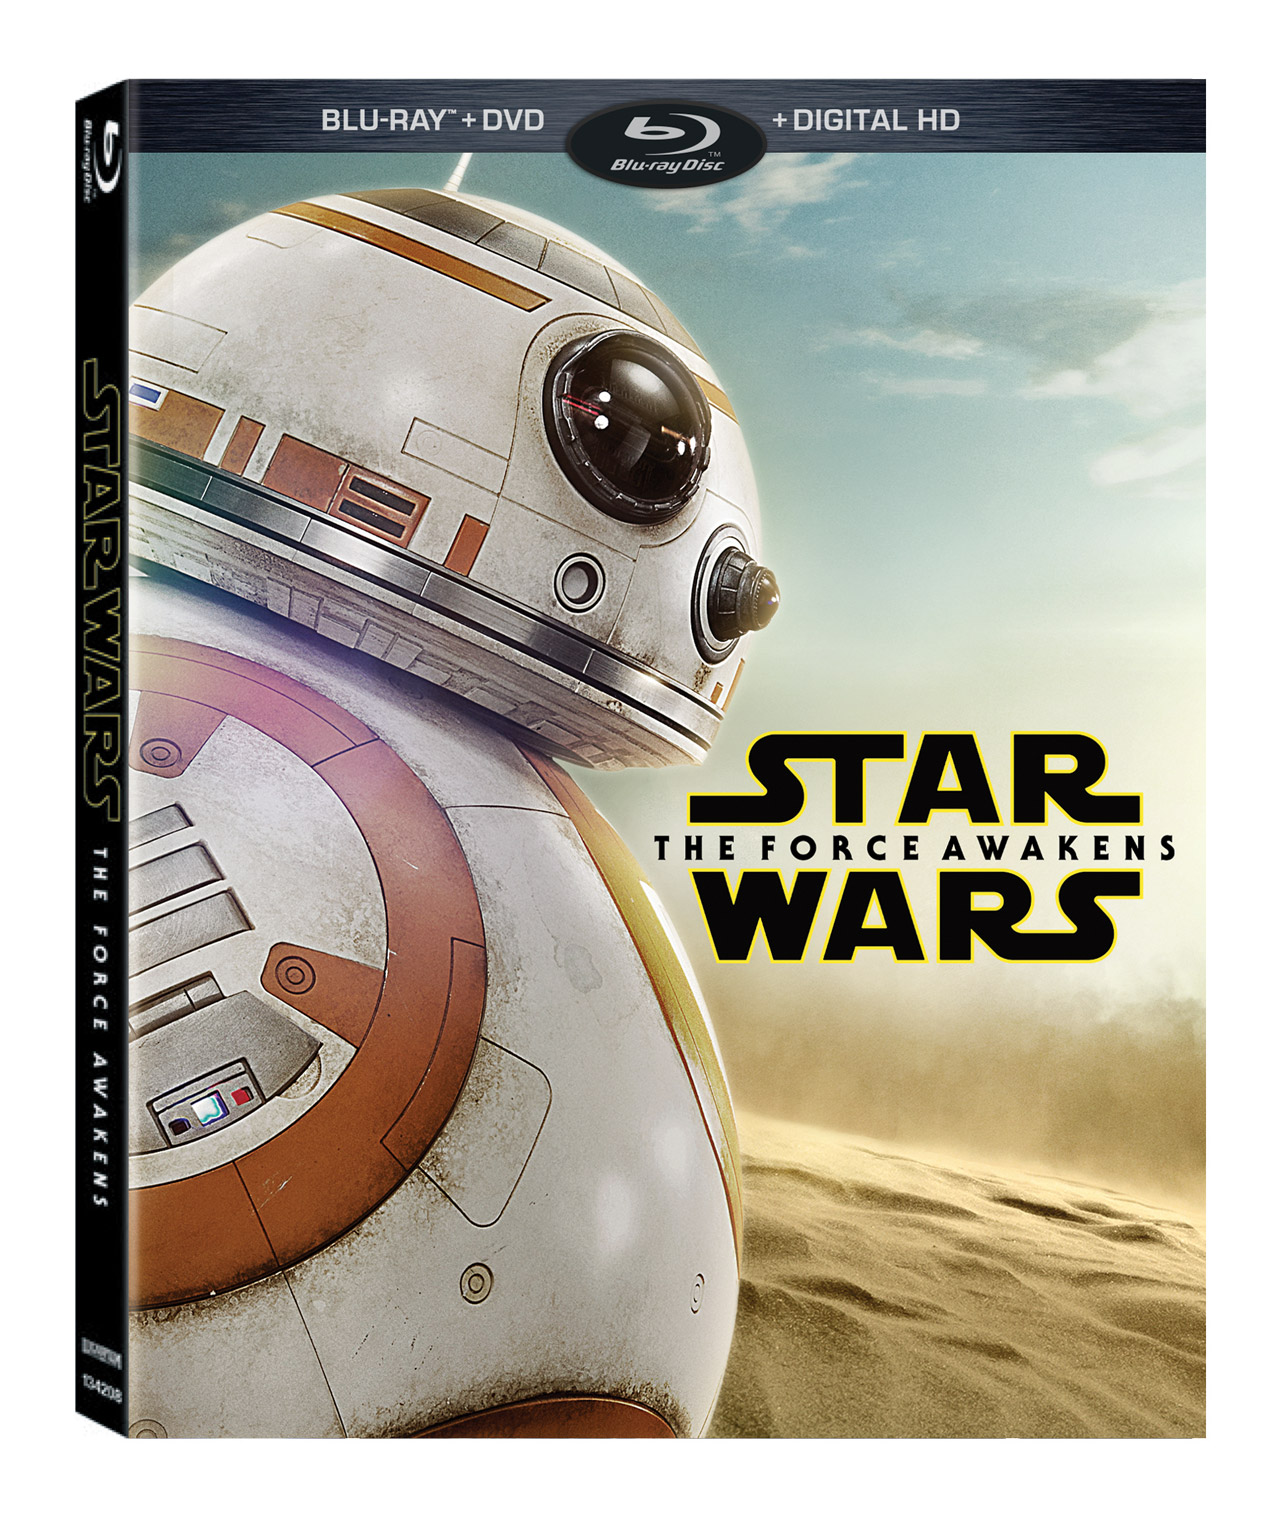 The Force Awakens release Walmart. Force Awakens Blu-Ray release set for early April